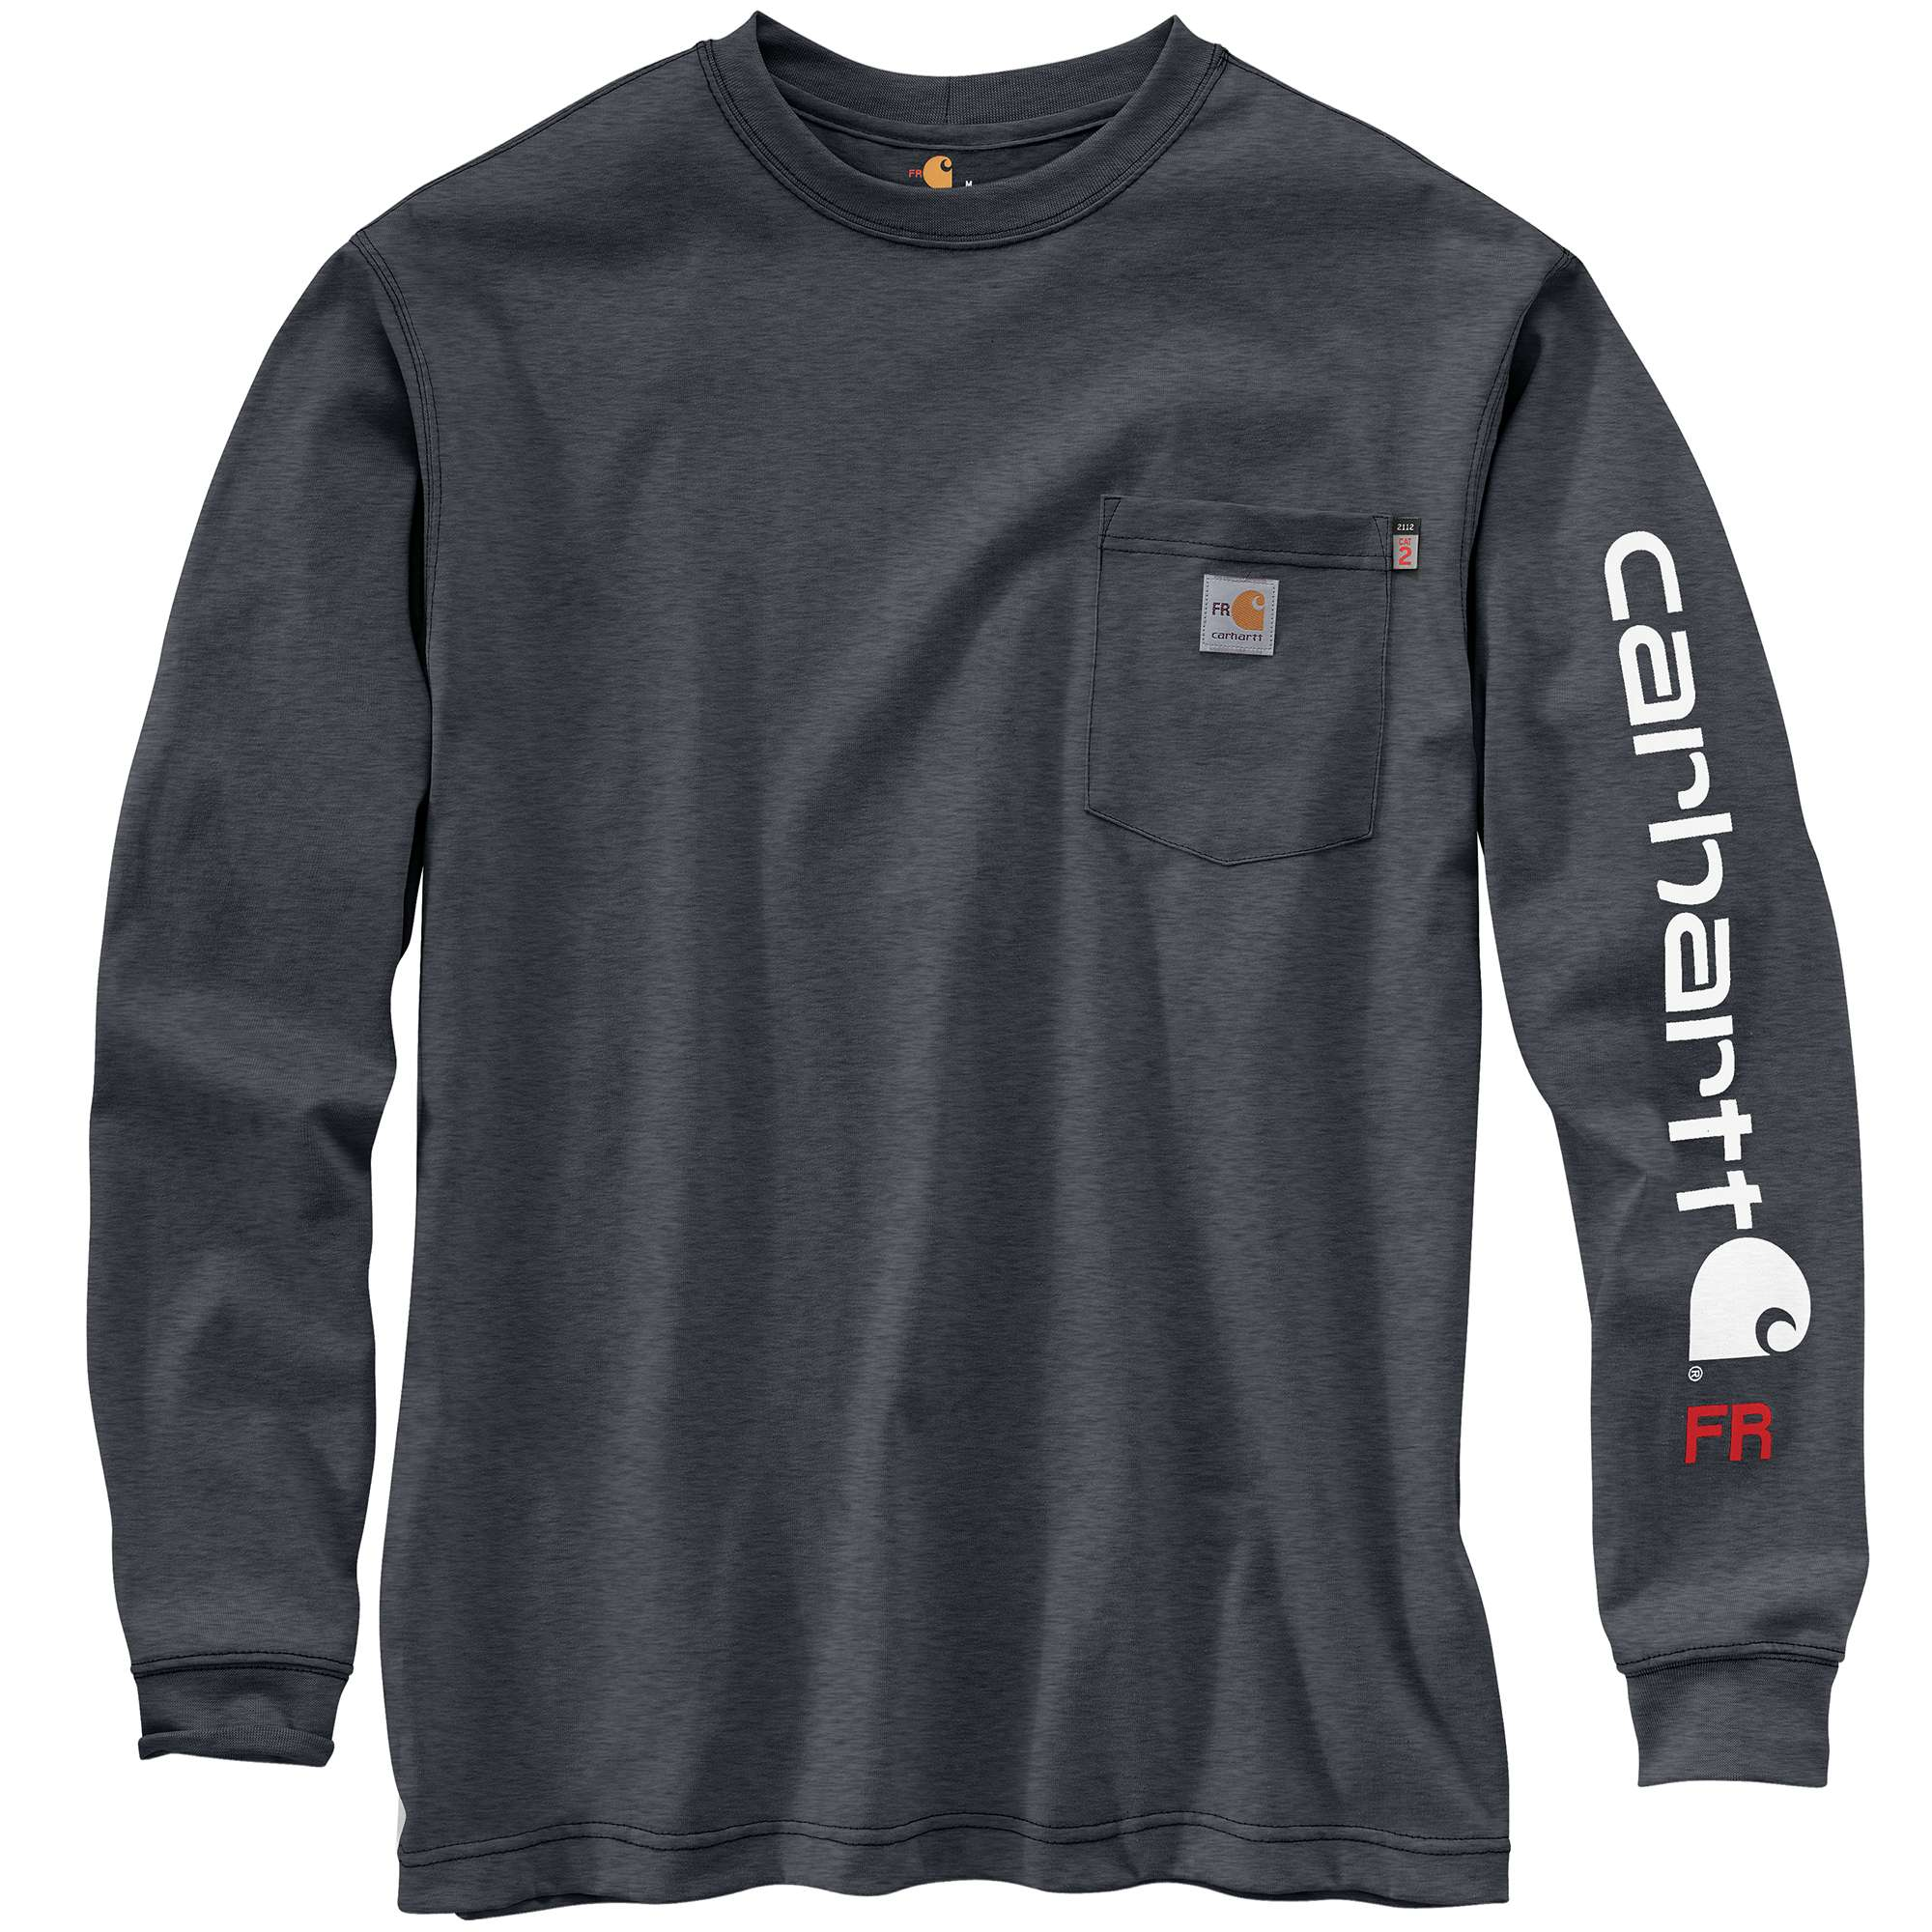 FR Force Original Fit Midweight Long-Sleeve Signature Logo T-Shirt